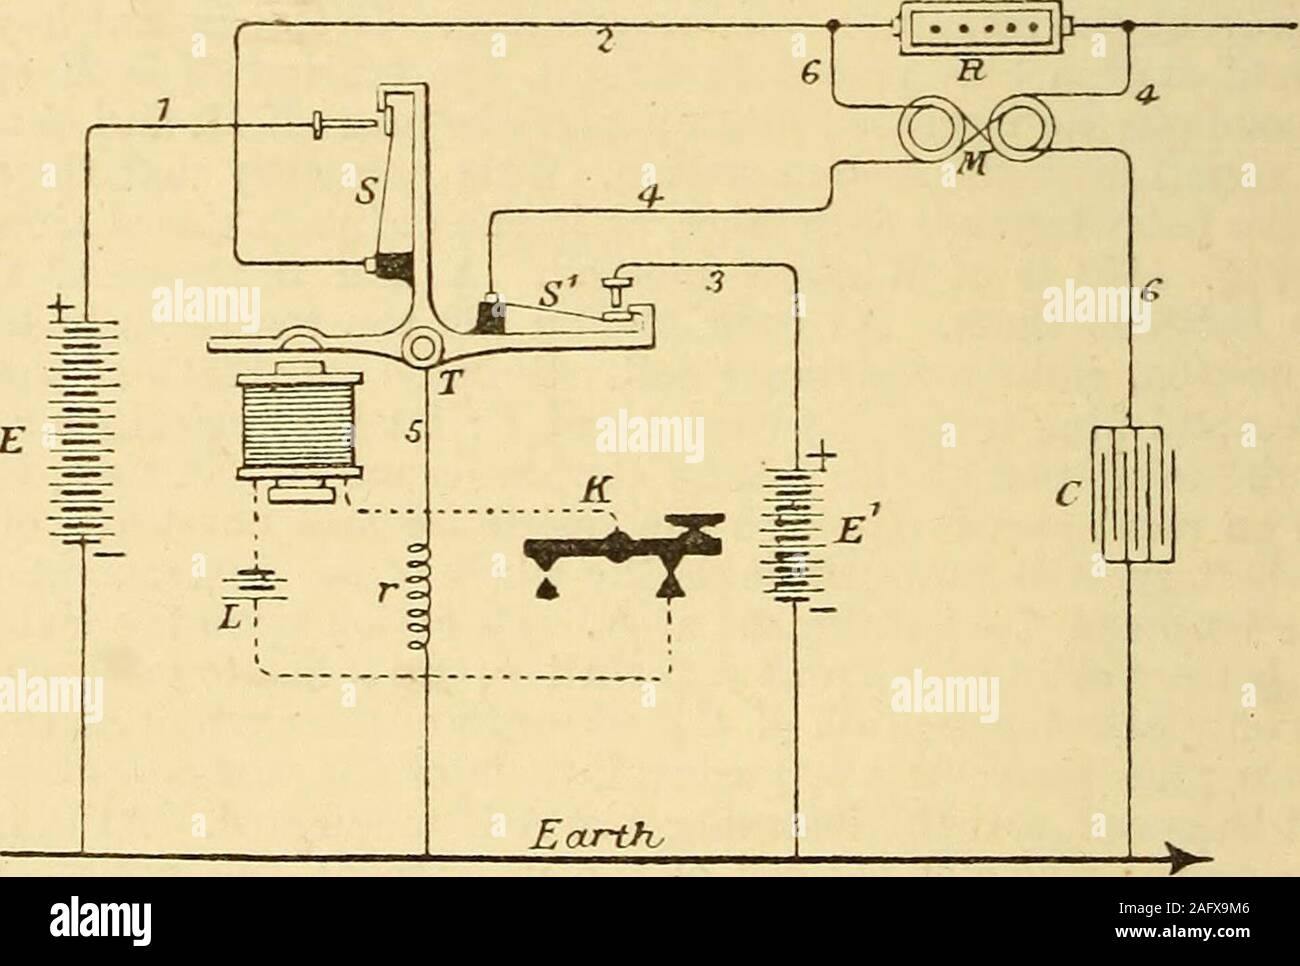 Supplement To Spons Dictionary Of Engineering Civil Mechanical Military And Naval Art Of Tlie Wire 6 Whichis Attached To The Battery 2 And To One Side Of A Condenser 0 The